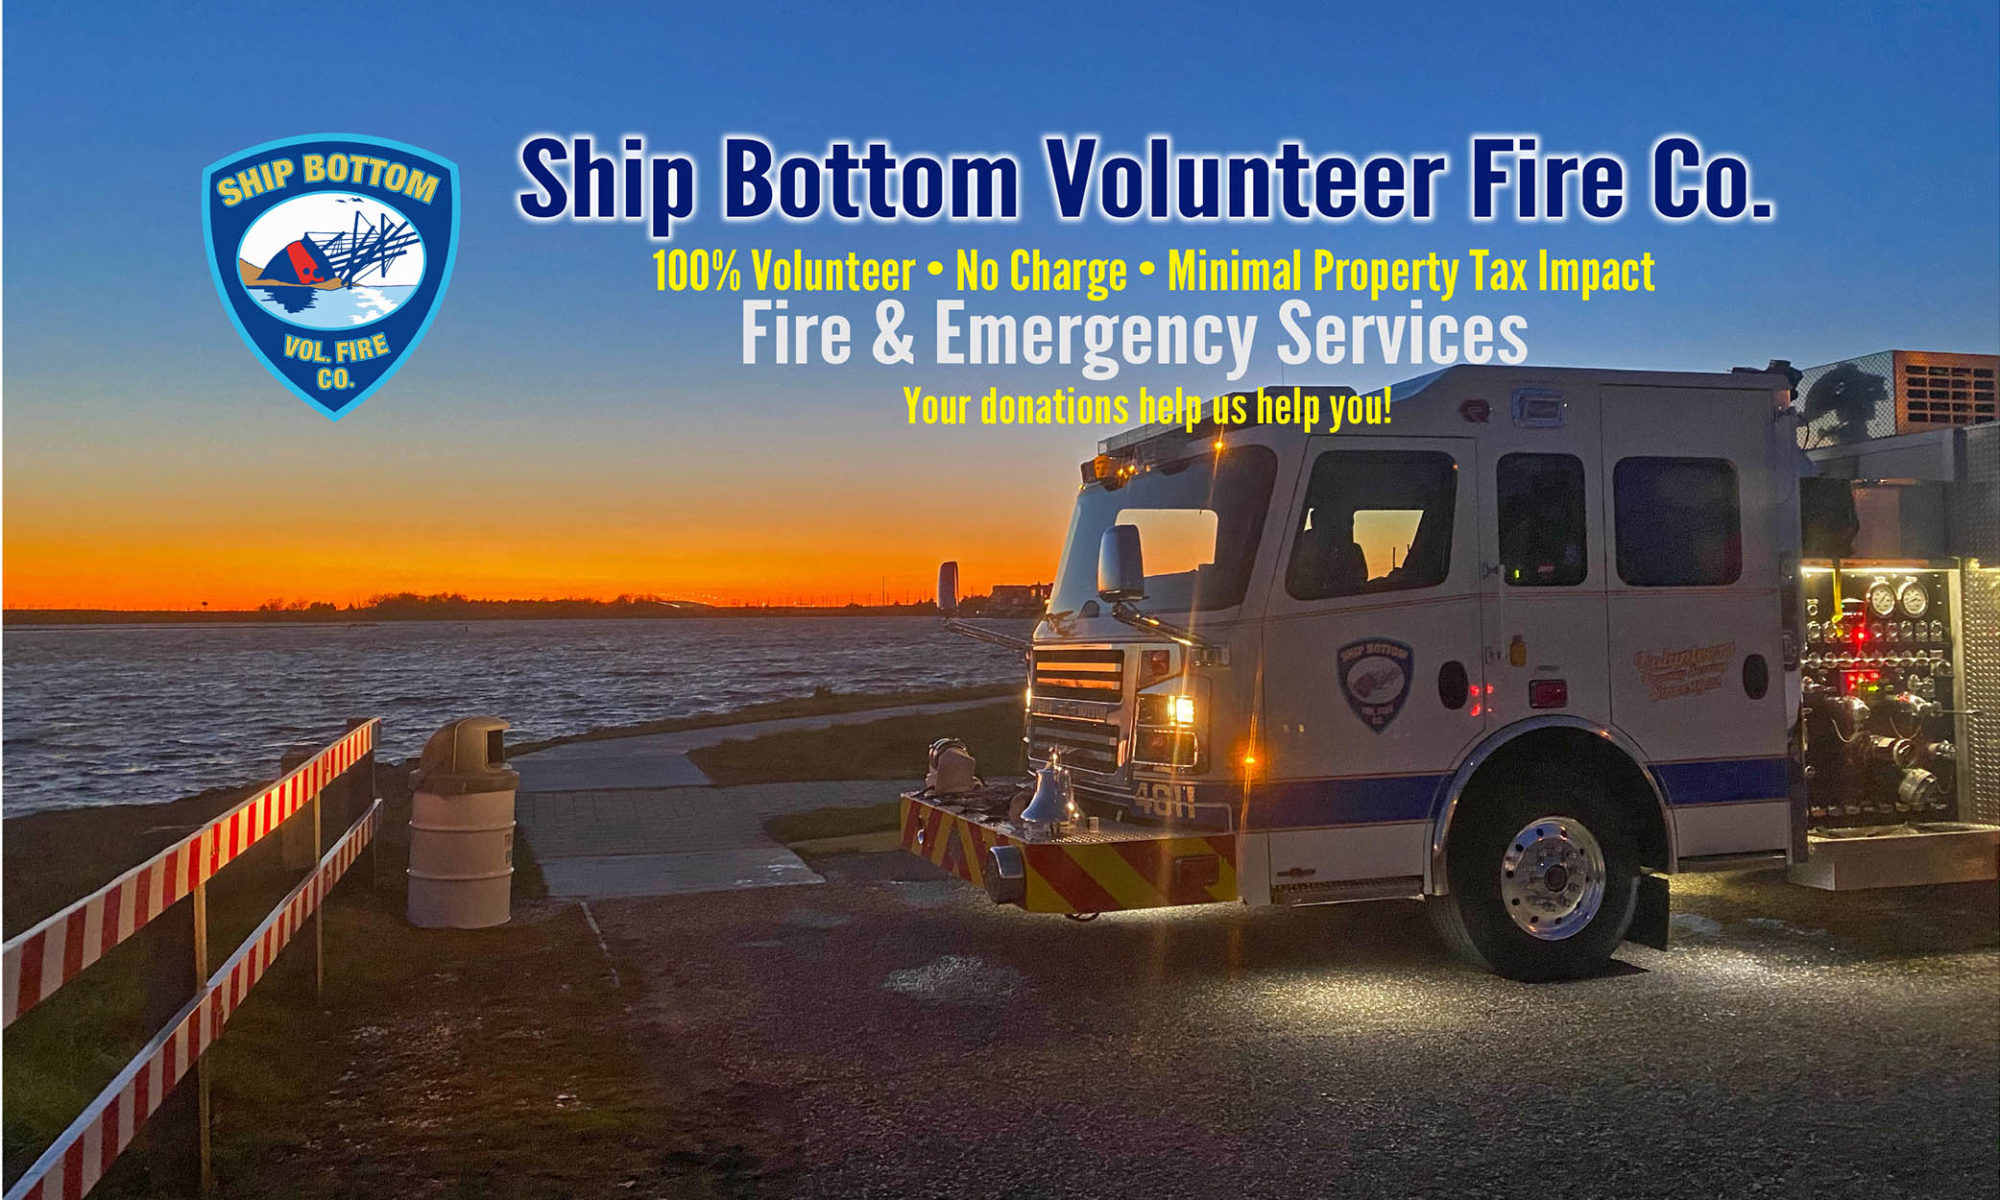 Ship Bottom Volunteer Fire Co